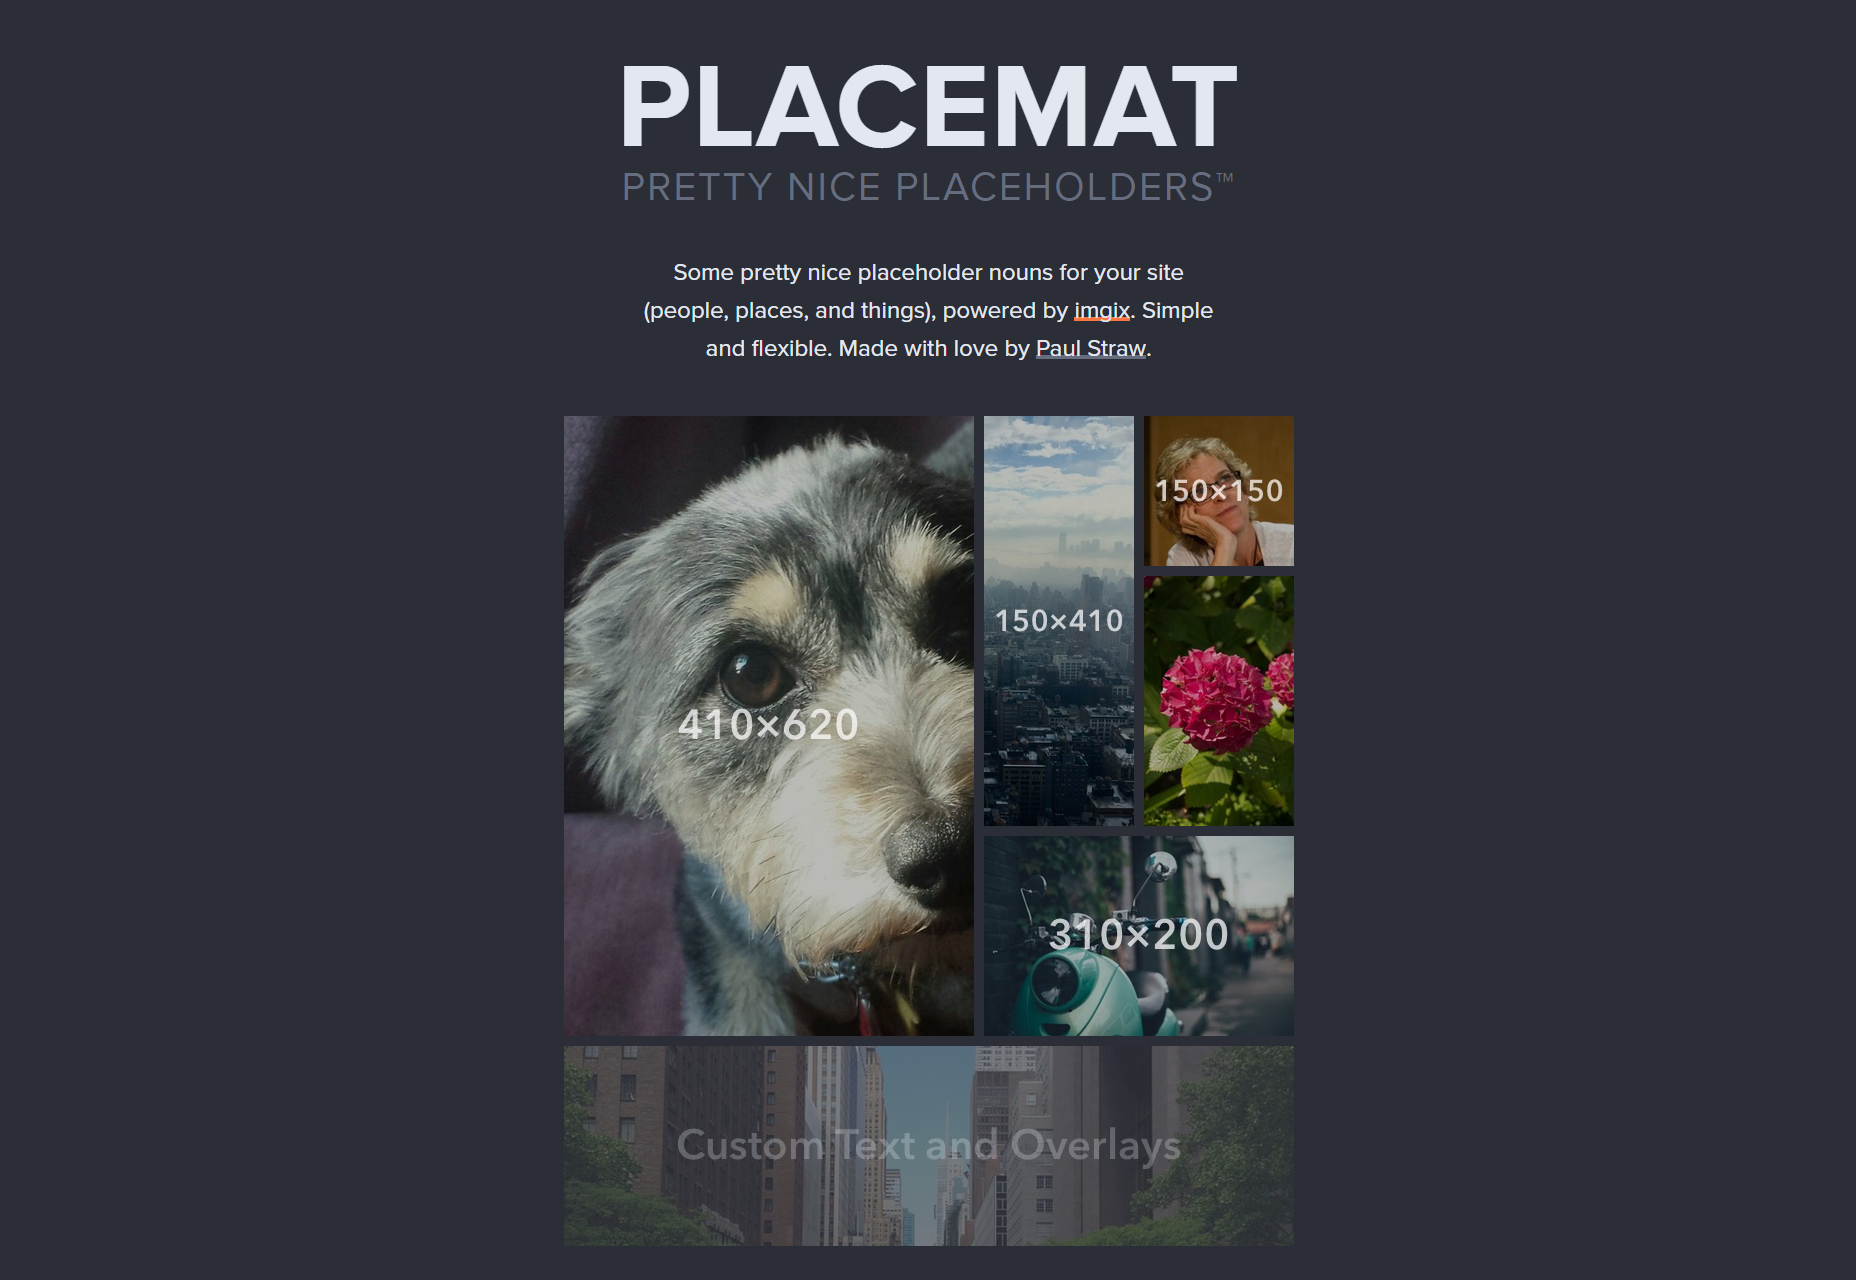 Placemat: Pretty URL Image Placeholders